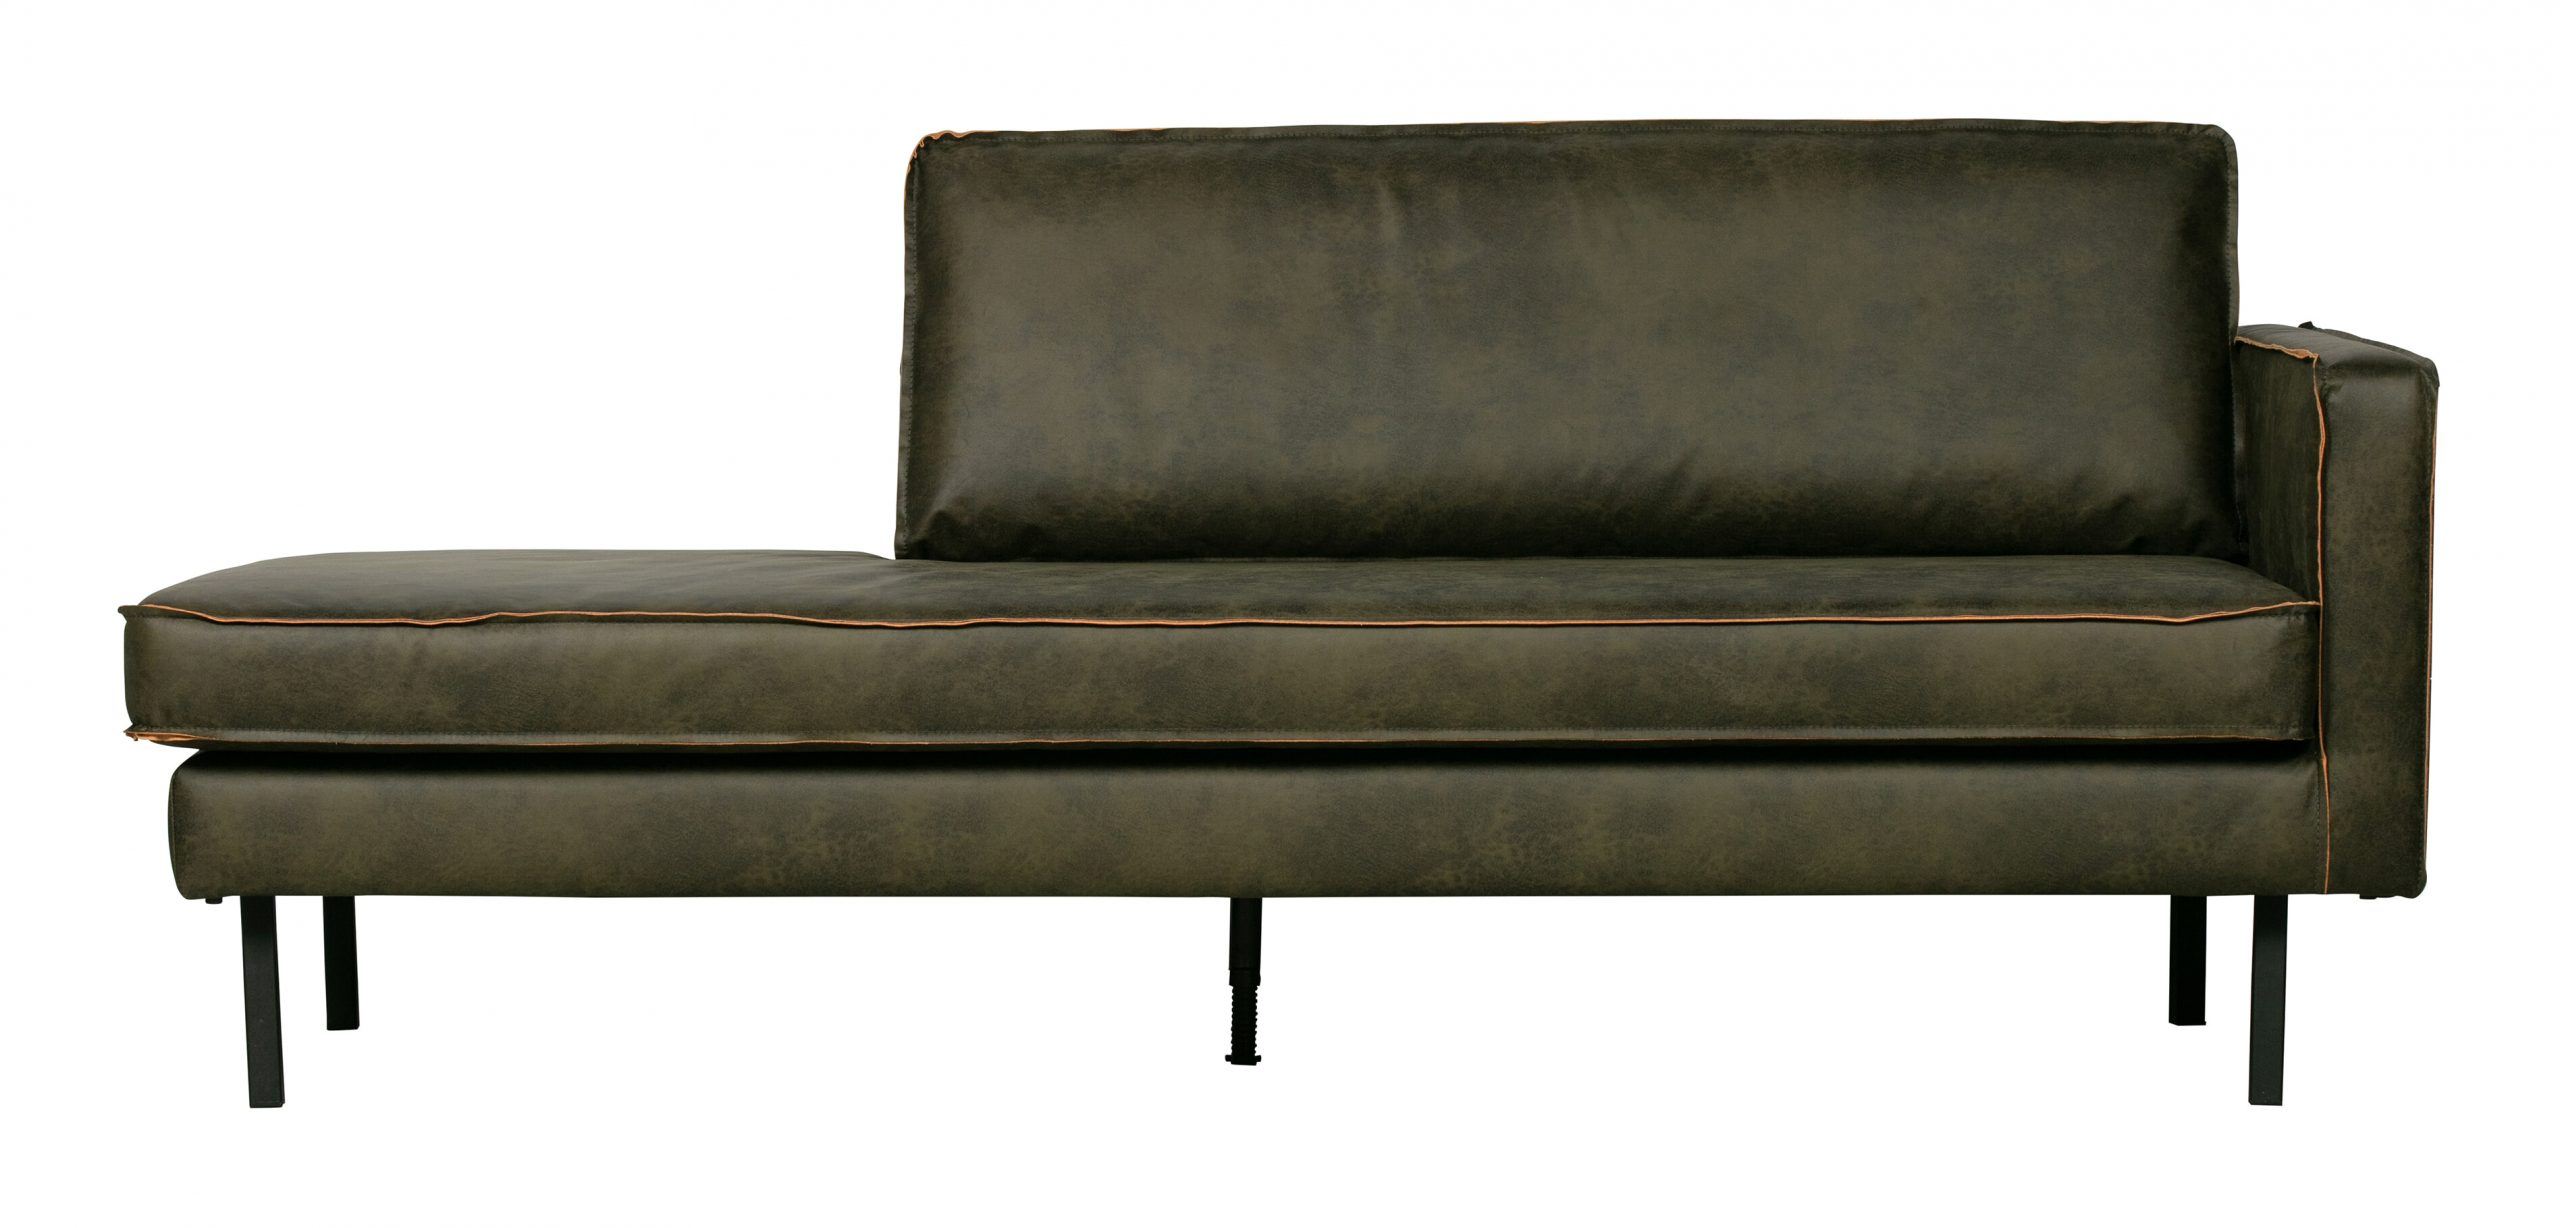 BePureHome Daybed 'Rodeo' Rechts, kleur Army   BePureHome